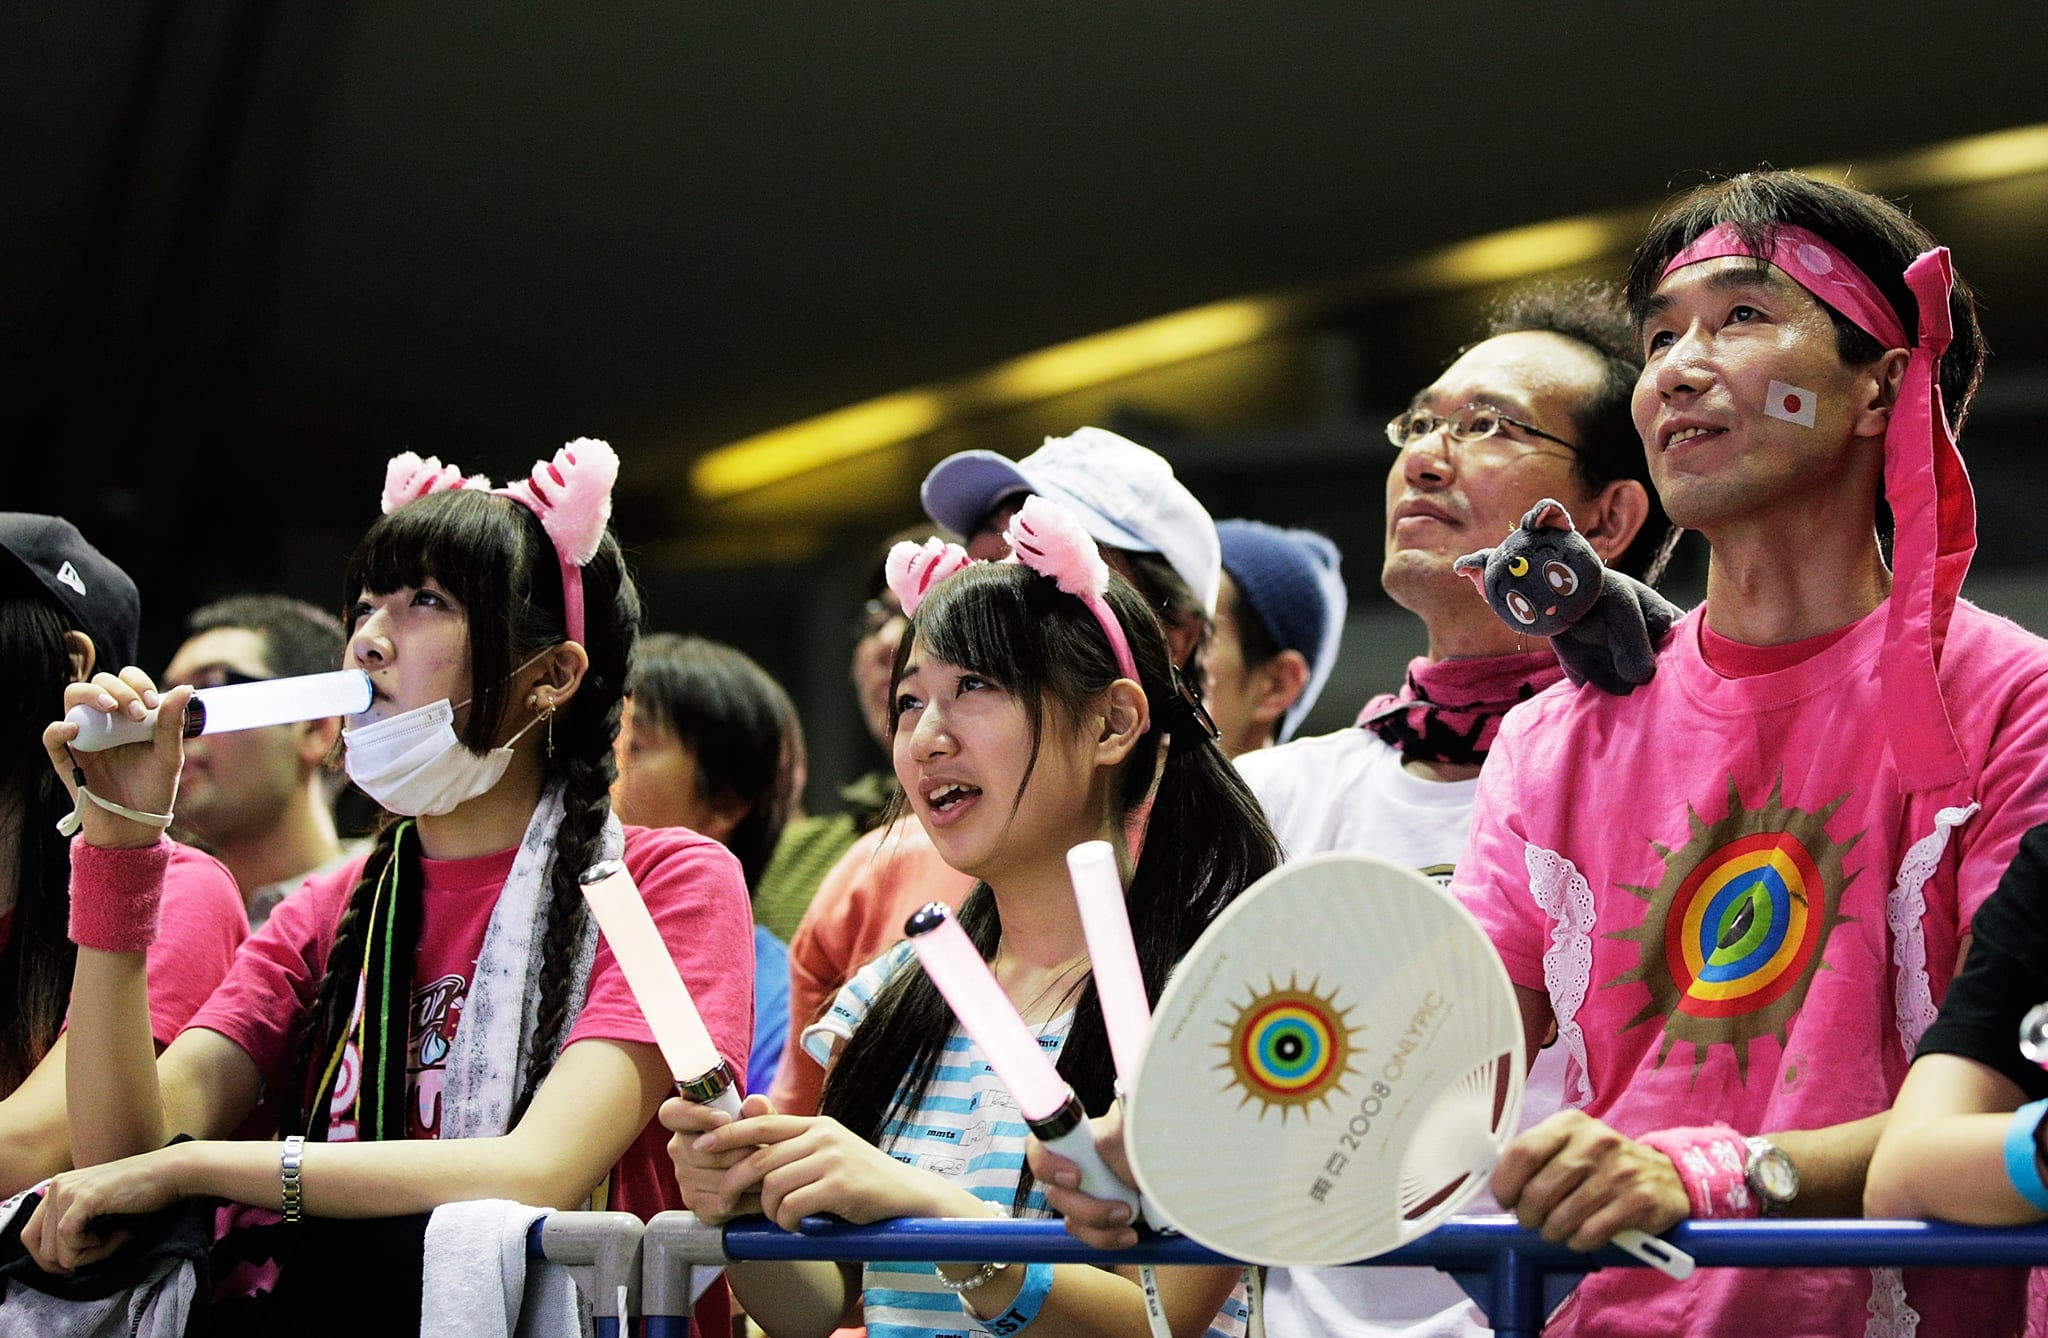 At Komazawa Olympic Park, Tokyo residents anxiously awaited the announcement.